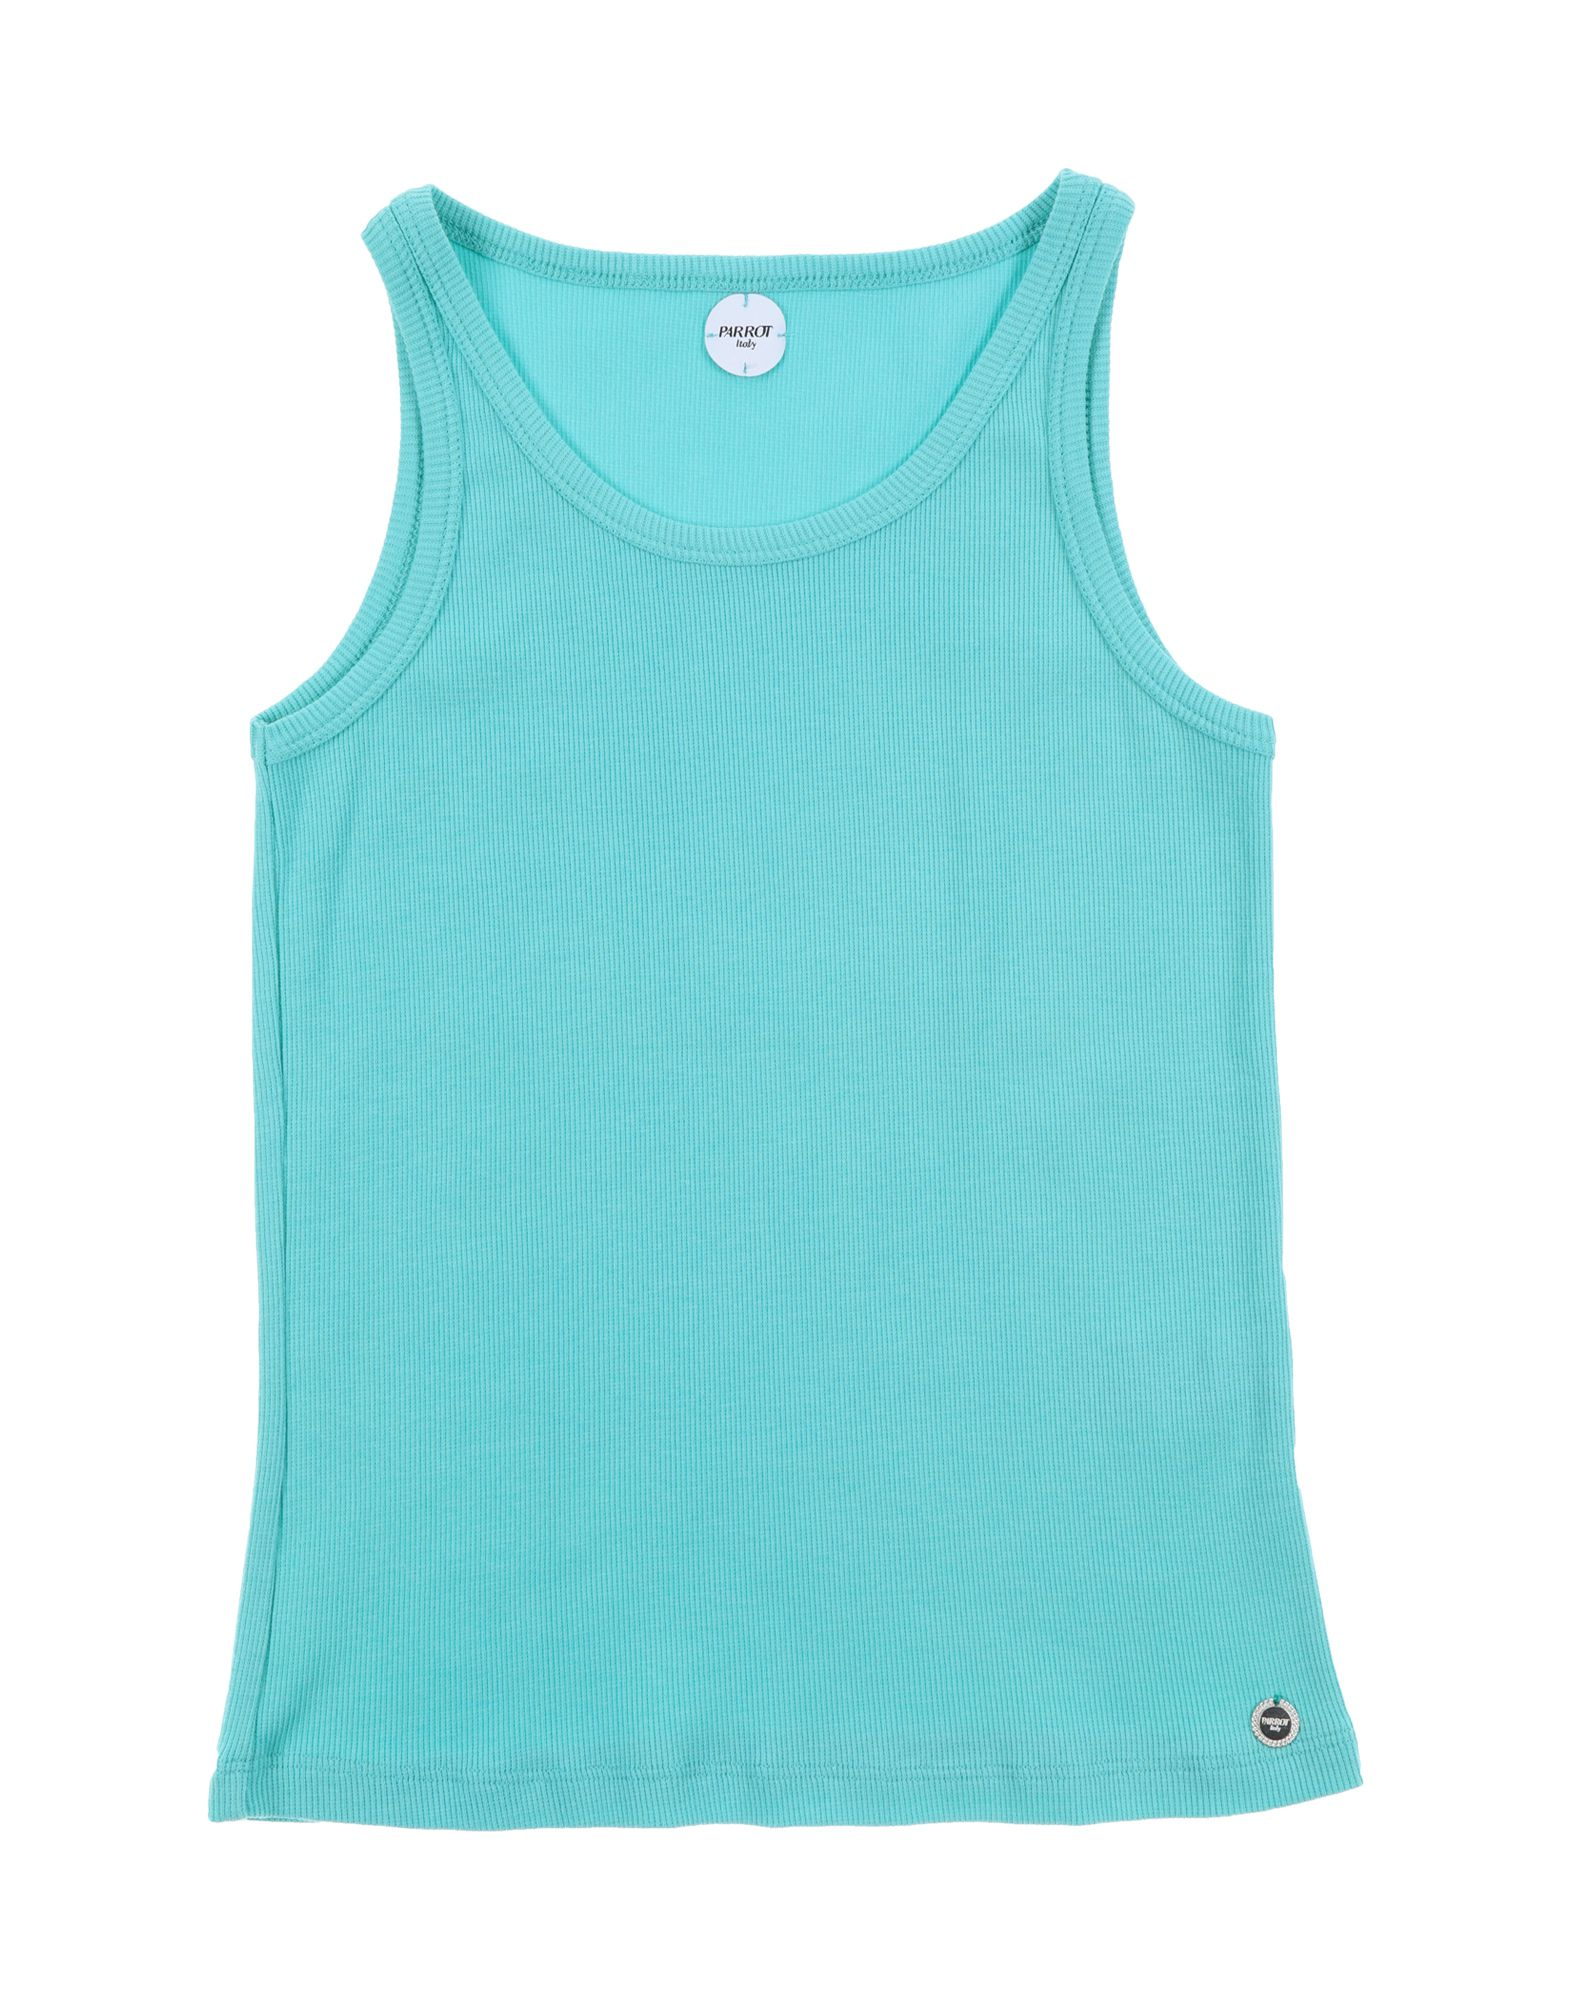 Parrot Kids' Tank Tops In Turquoise